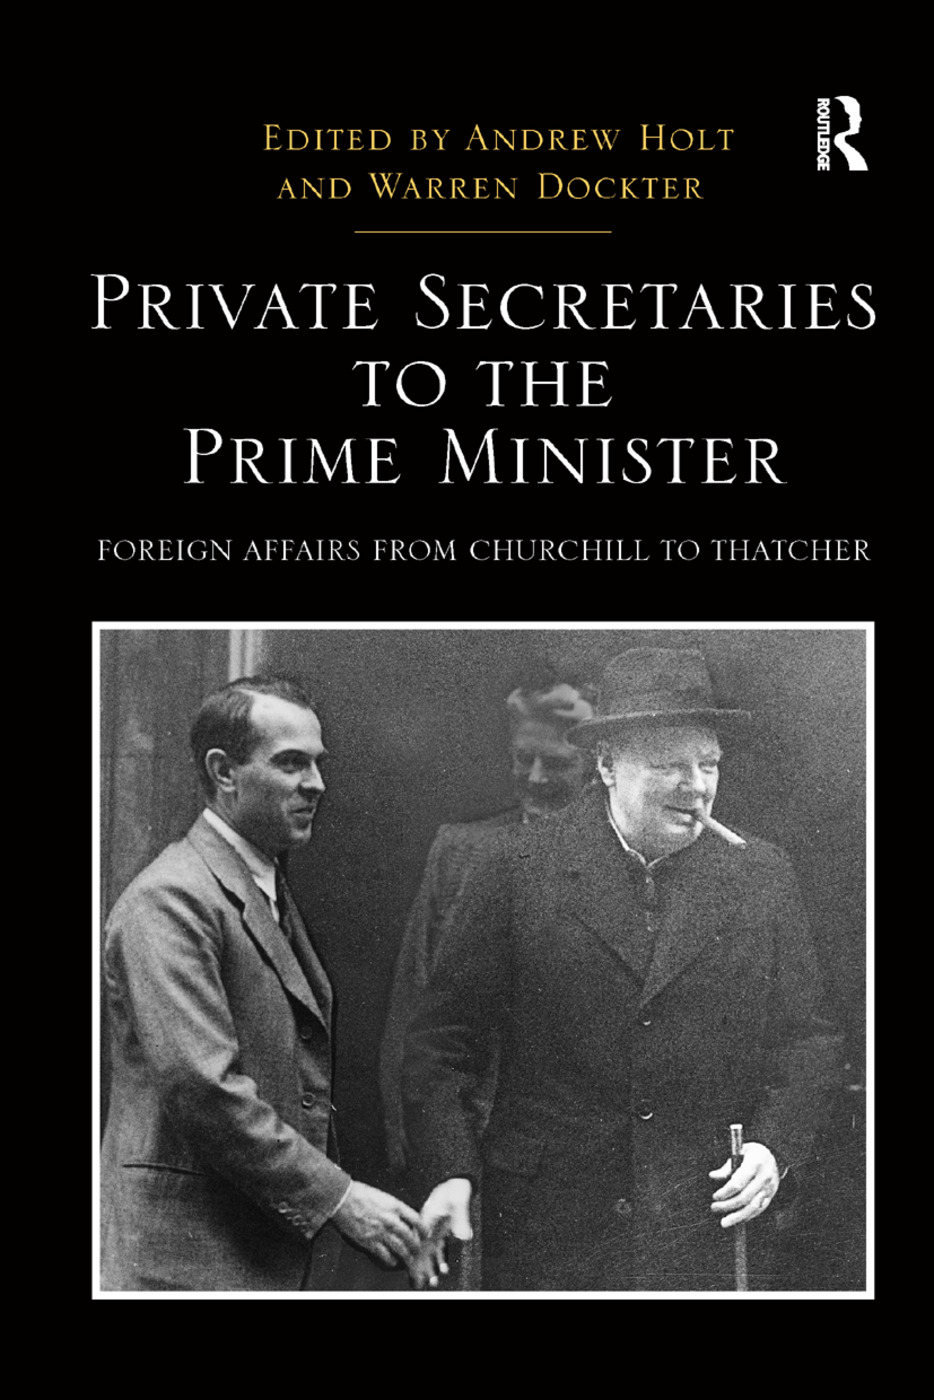 Private Secretaries to the Prime Minister